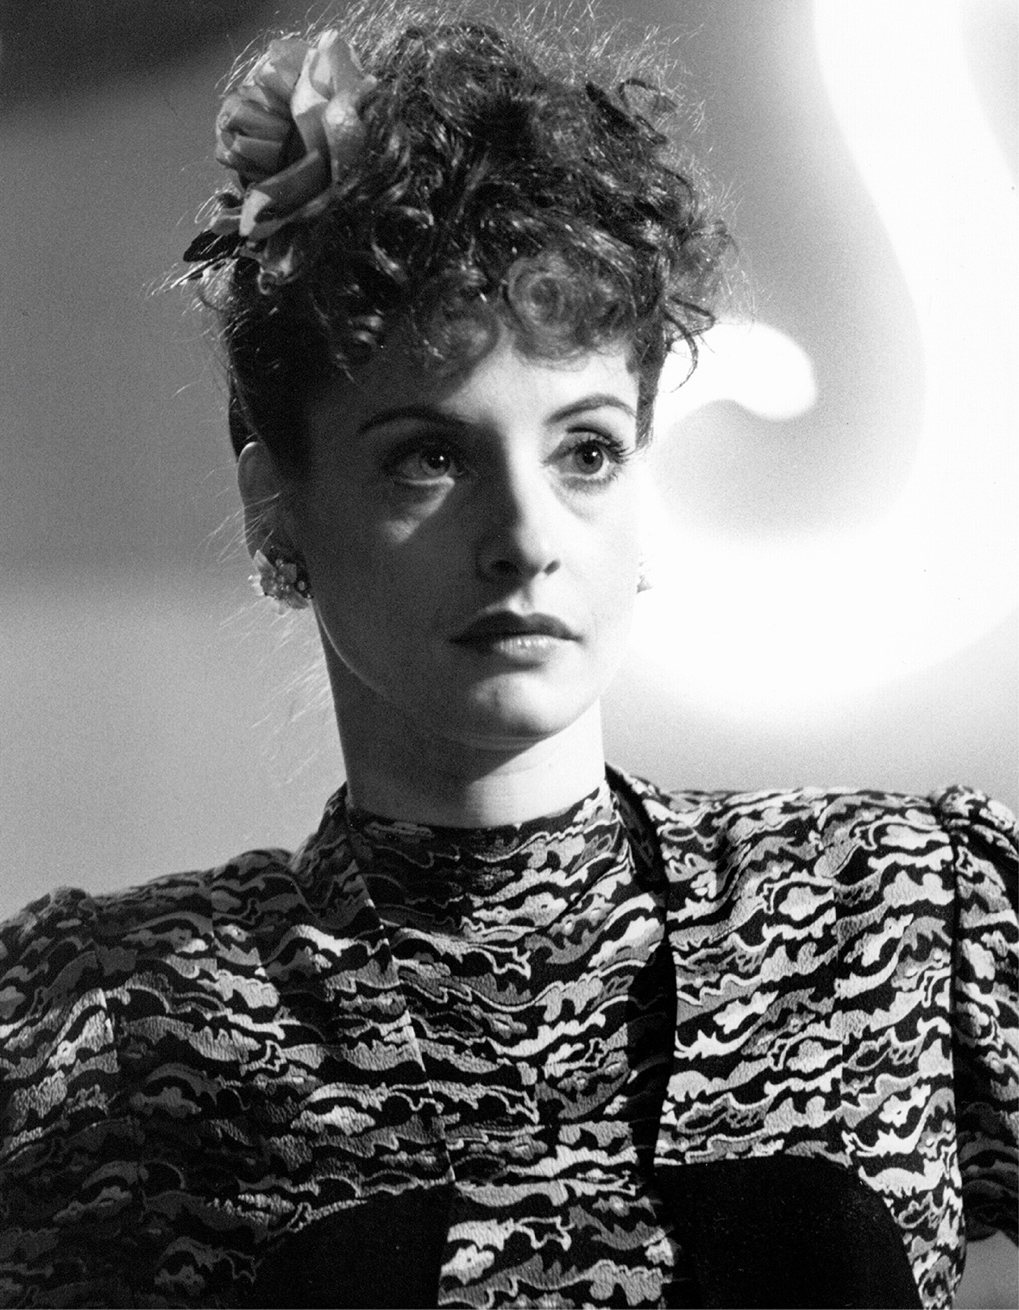 Patti LuPone as Lydia Hedberg in 1941